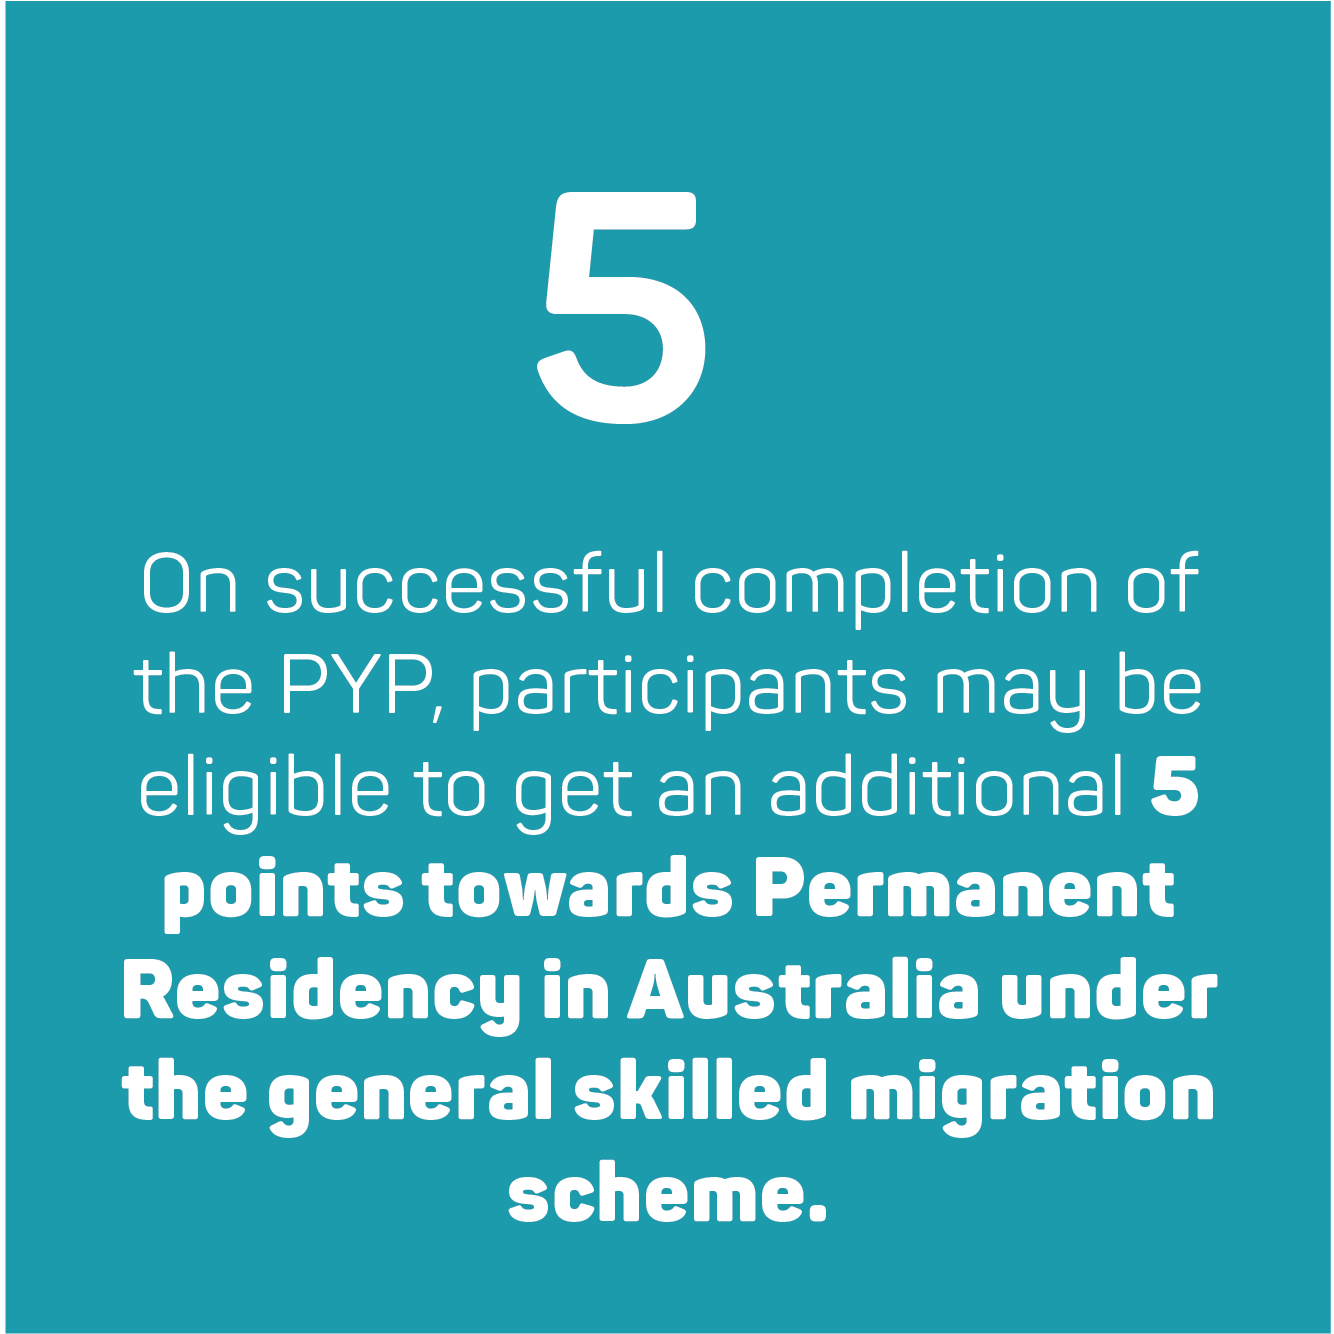 Earn 5 more points towards permanent residency